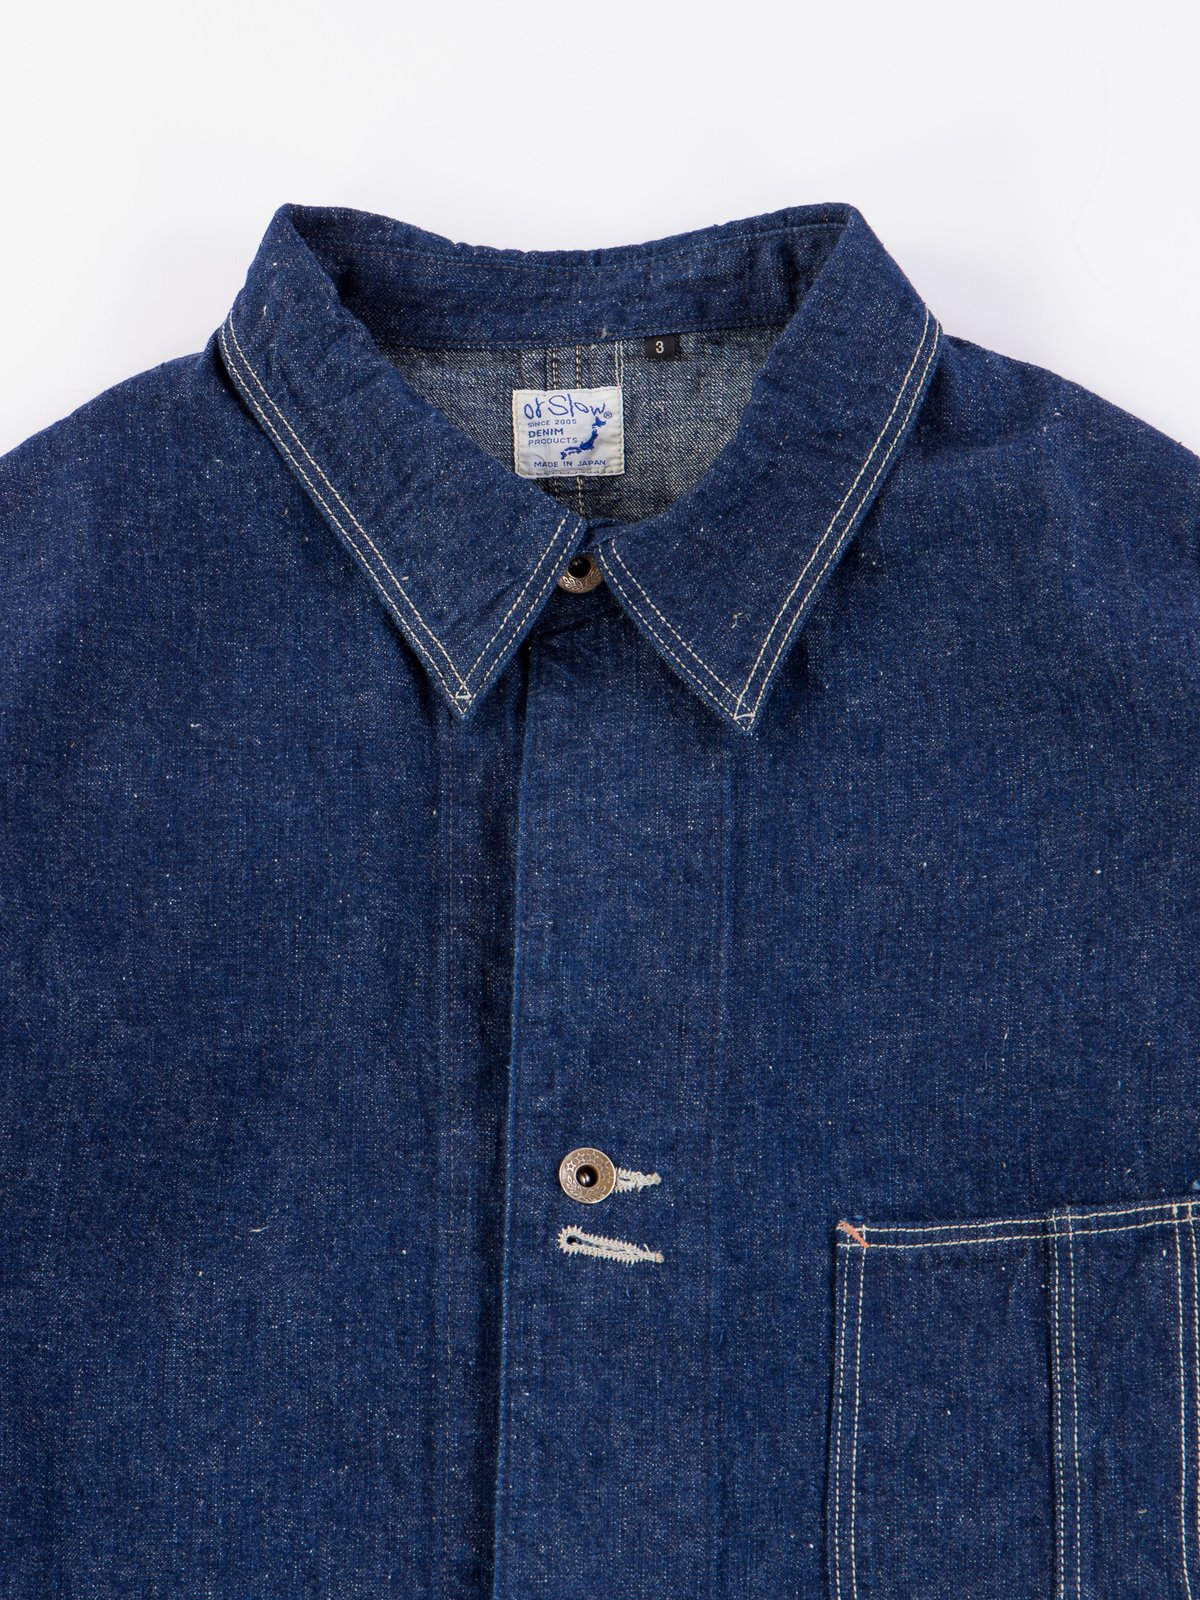 One Wash Denim 40's Coverall - Image 4